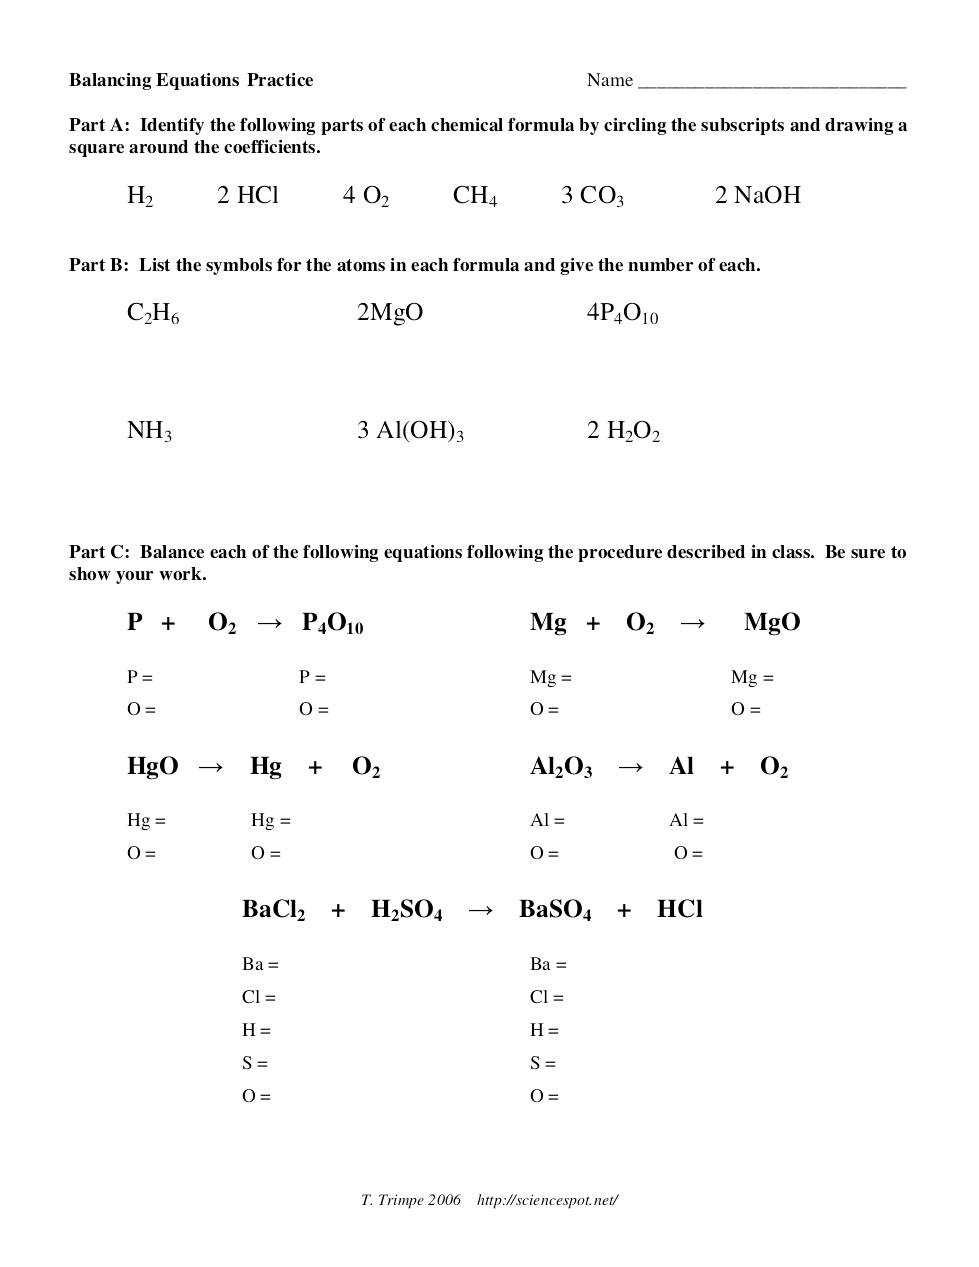 worksheet Balancing Equations Practice Worksheet Answer Key balancing equations practice dochub